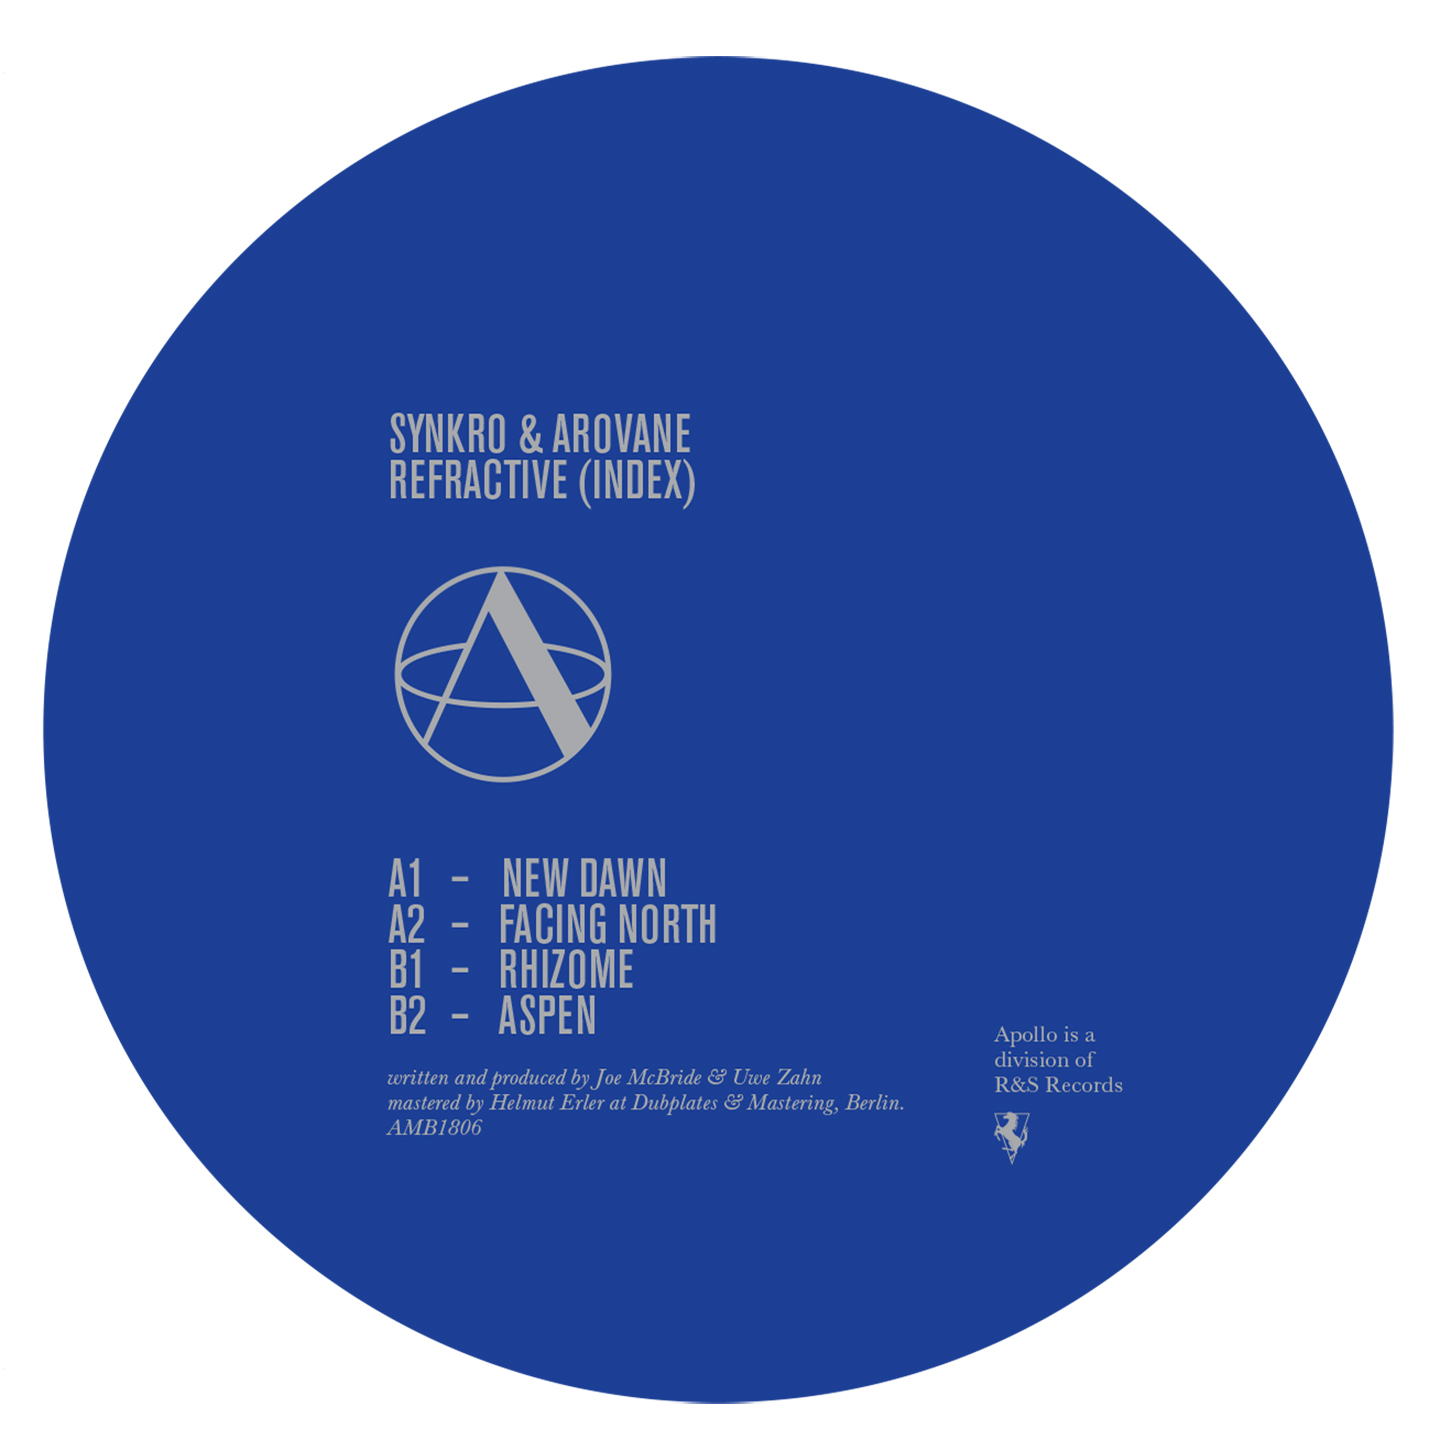 Synkro & Arovane/REFRACTIVE (INDEX) 12""